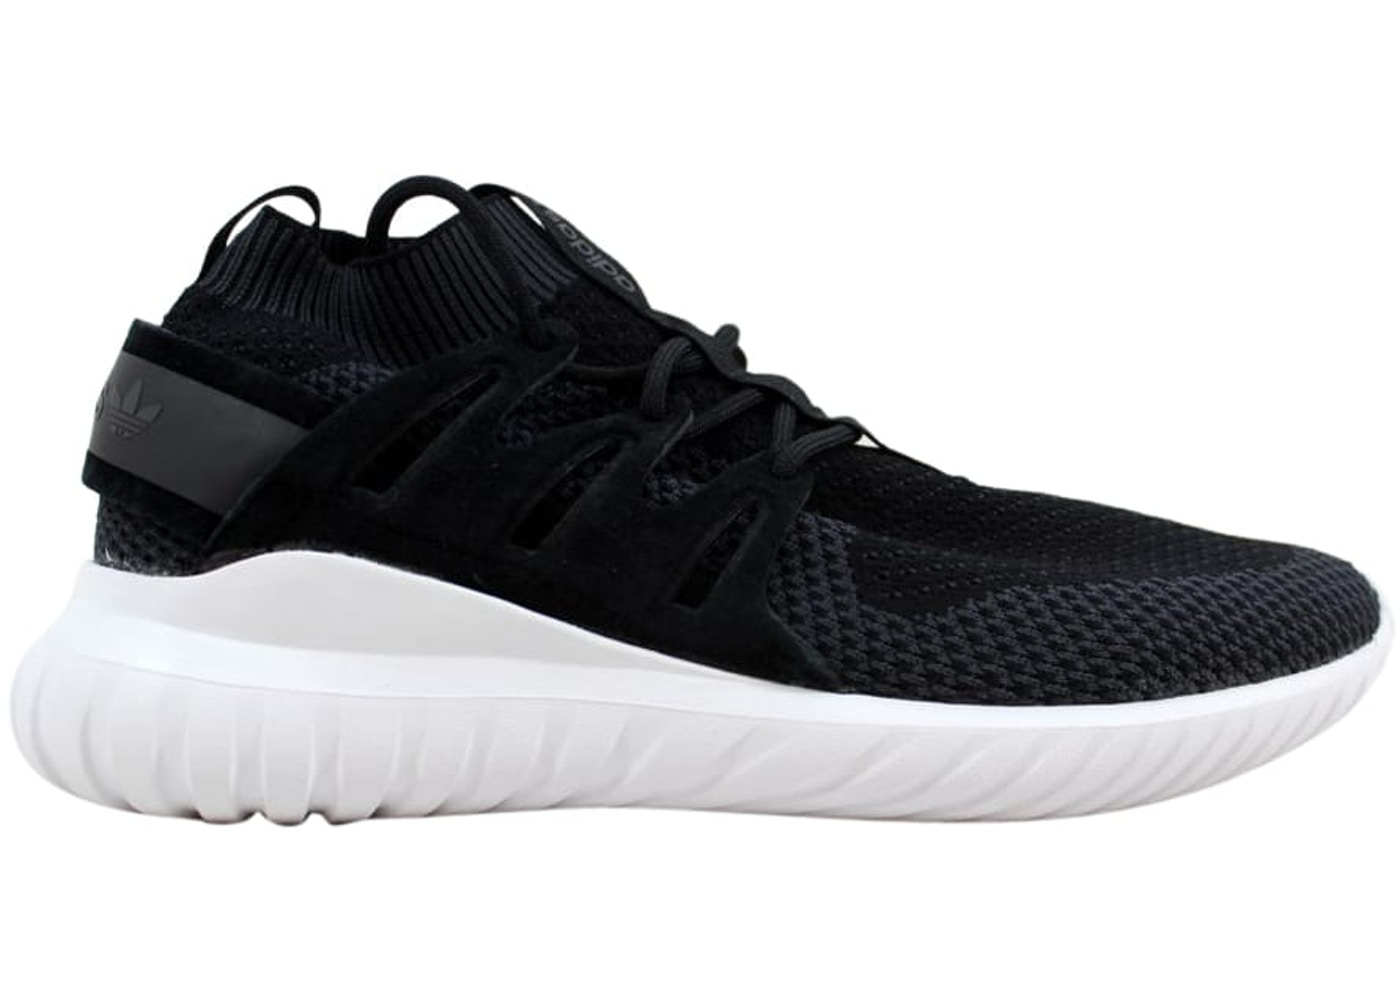 factory authentic 462e4 041ee adidas Tubular Nova PK Black